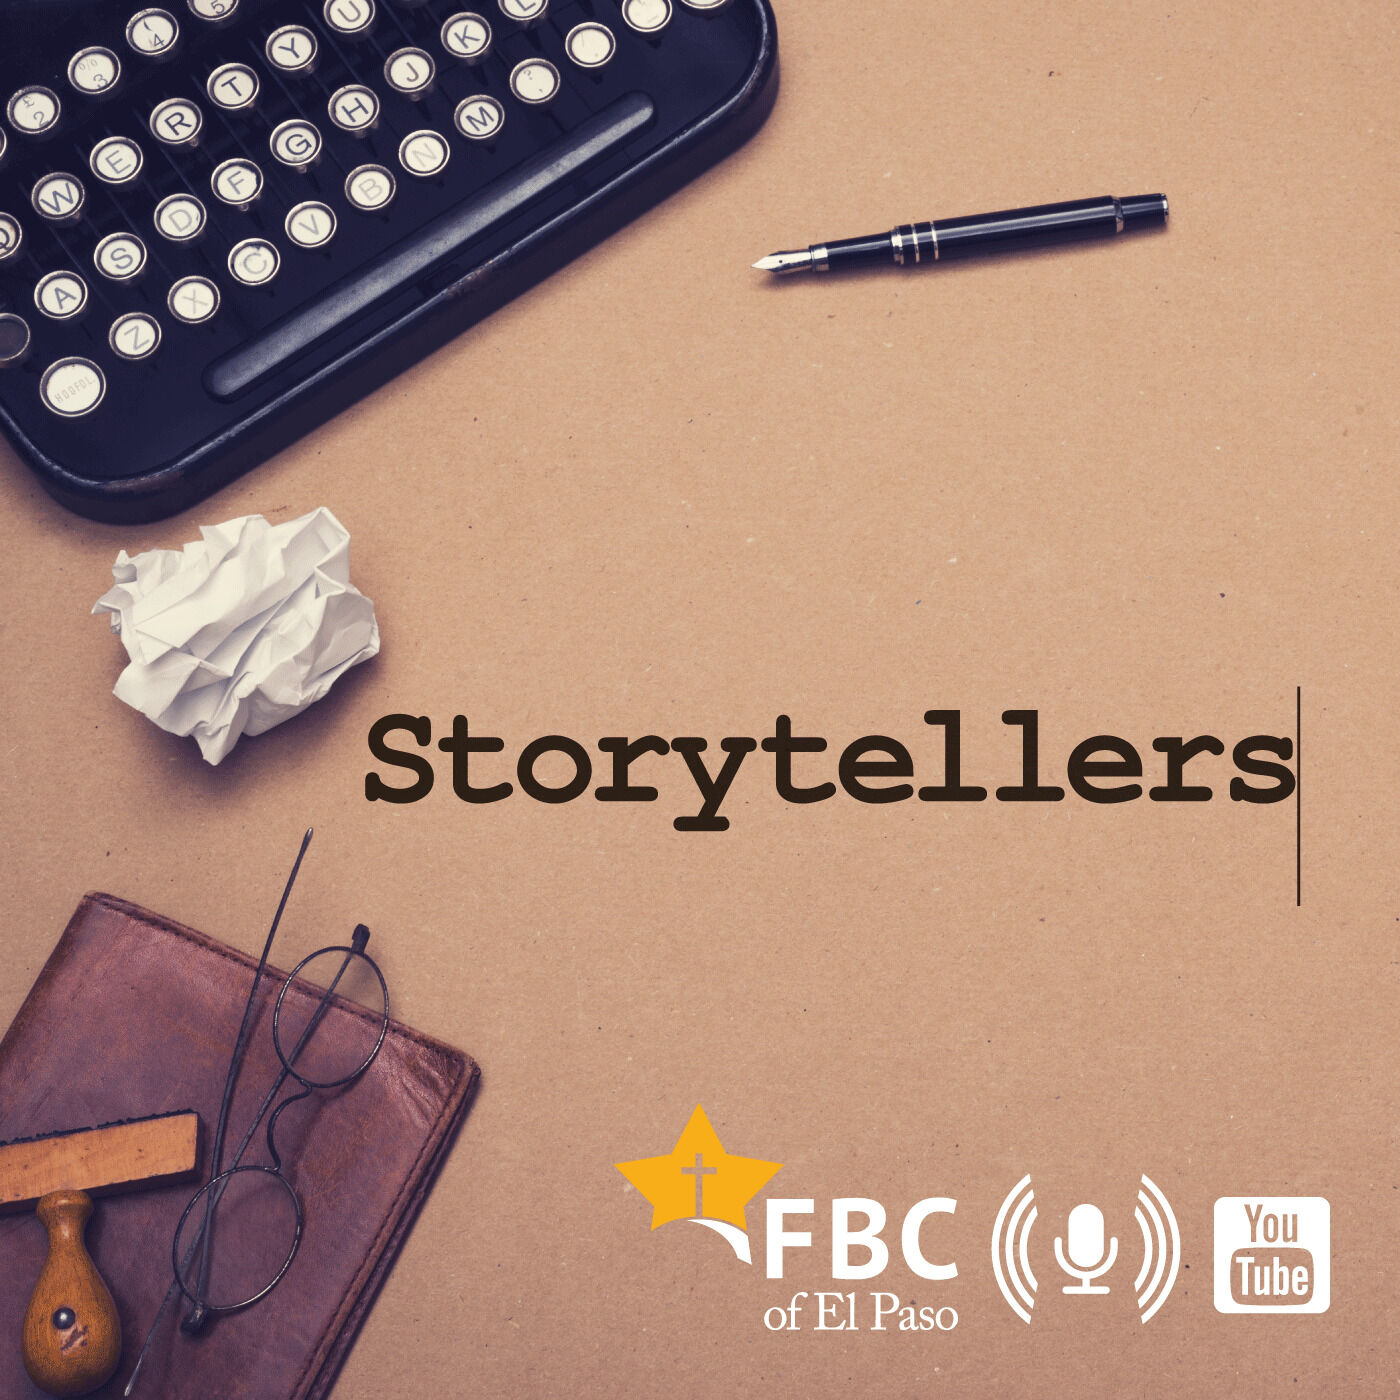 Storytellers: That's Messed Up!